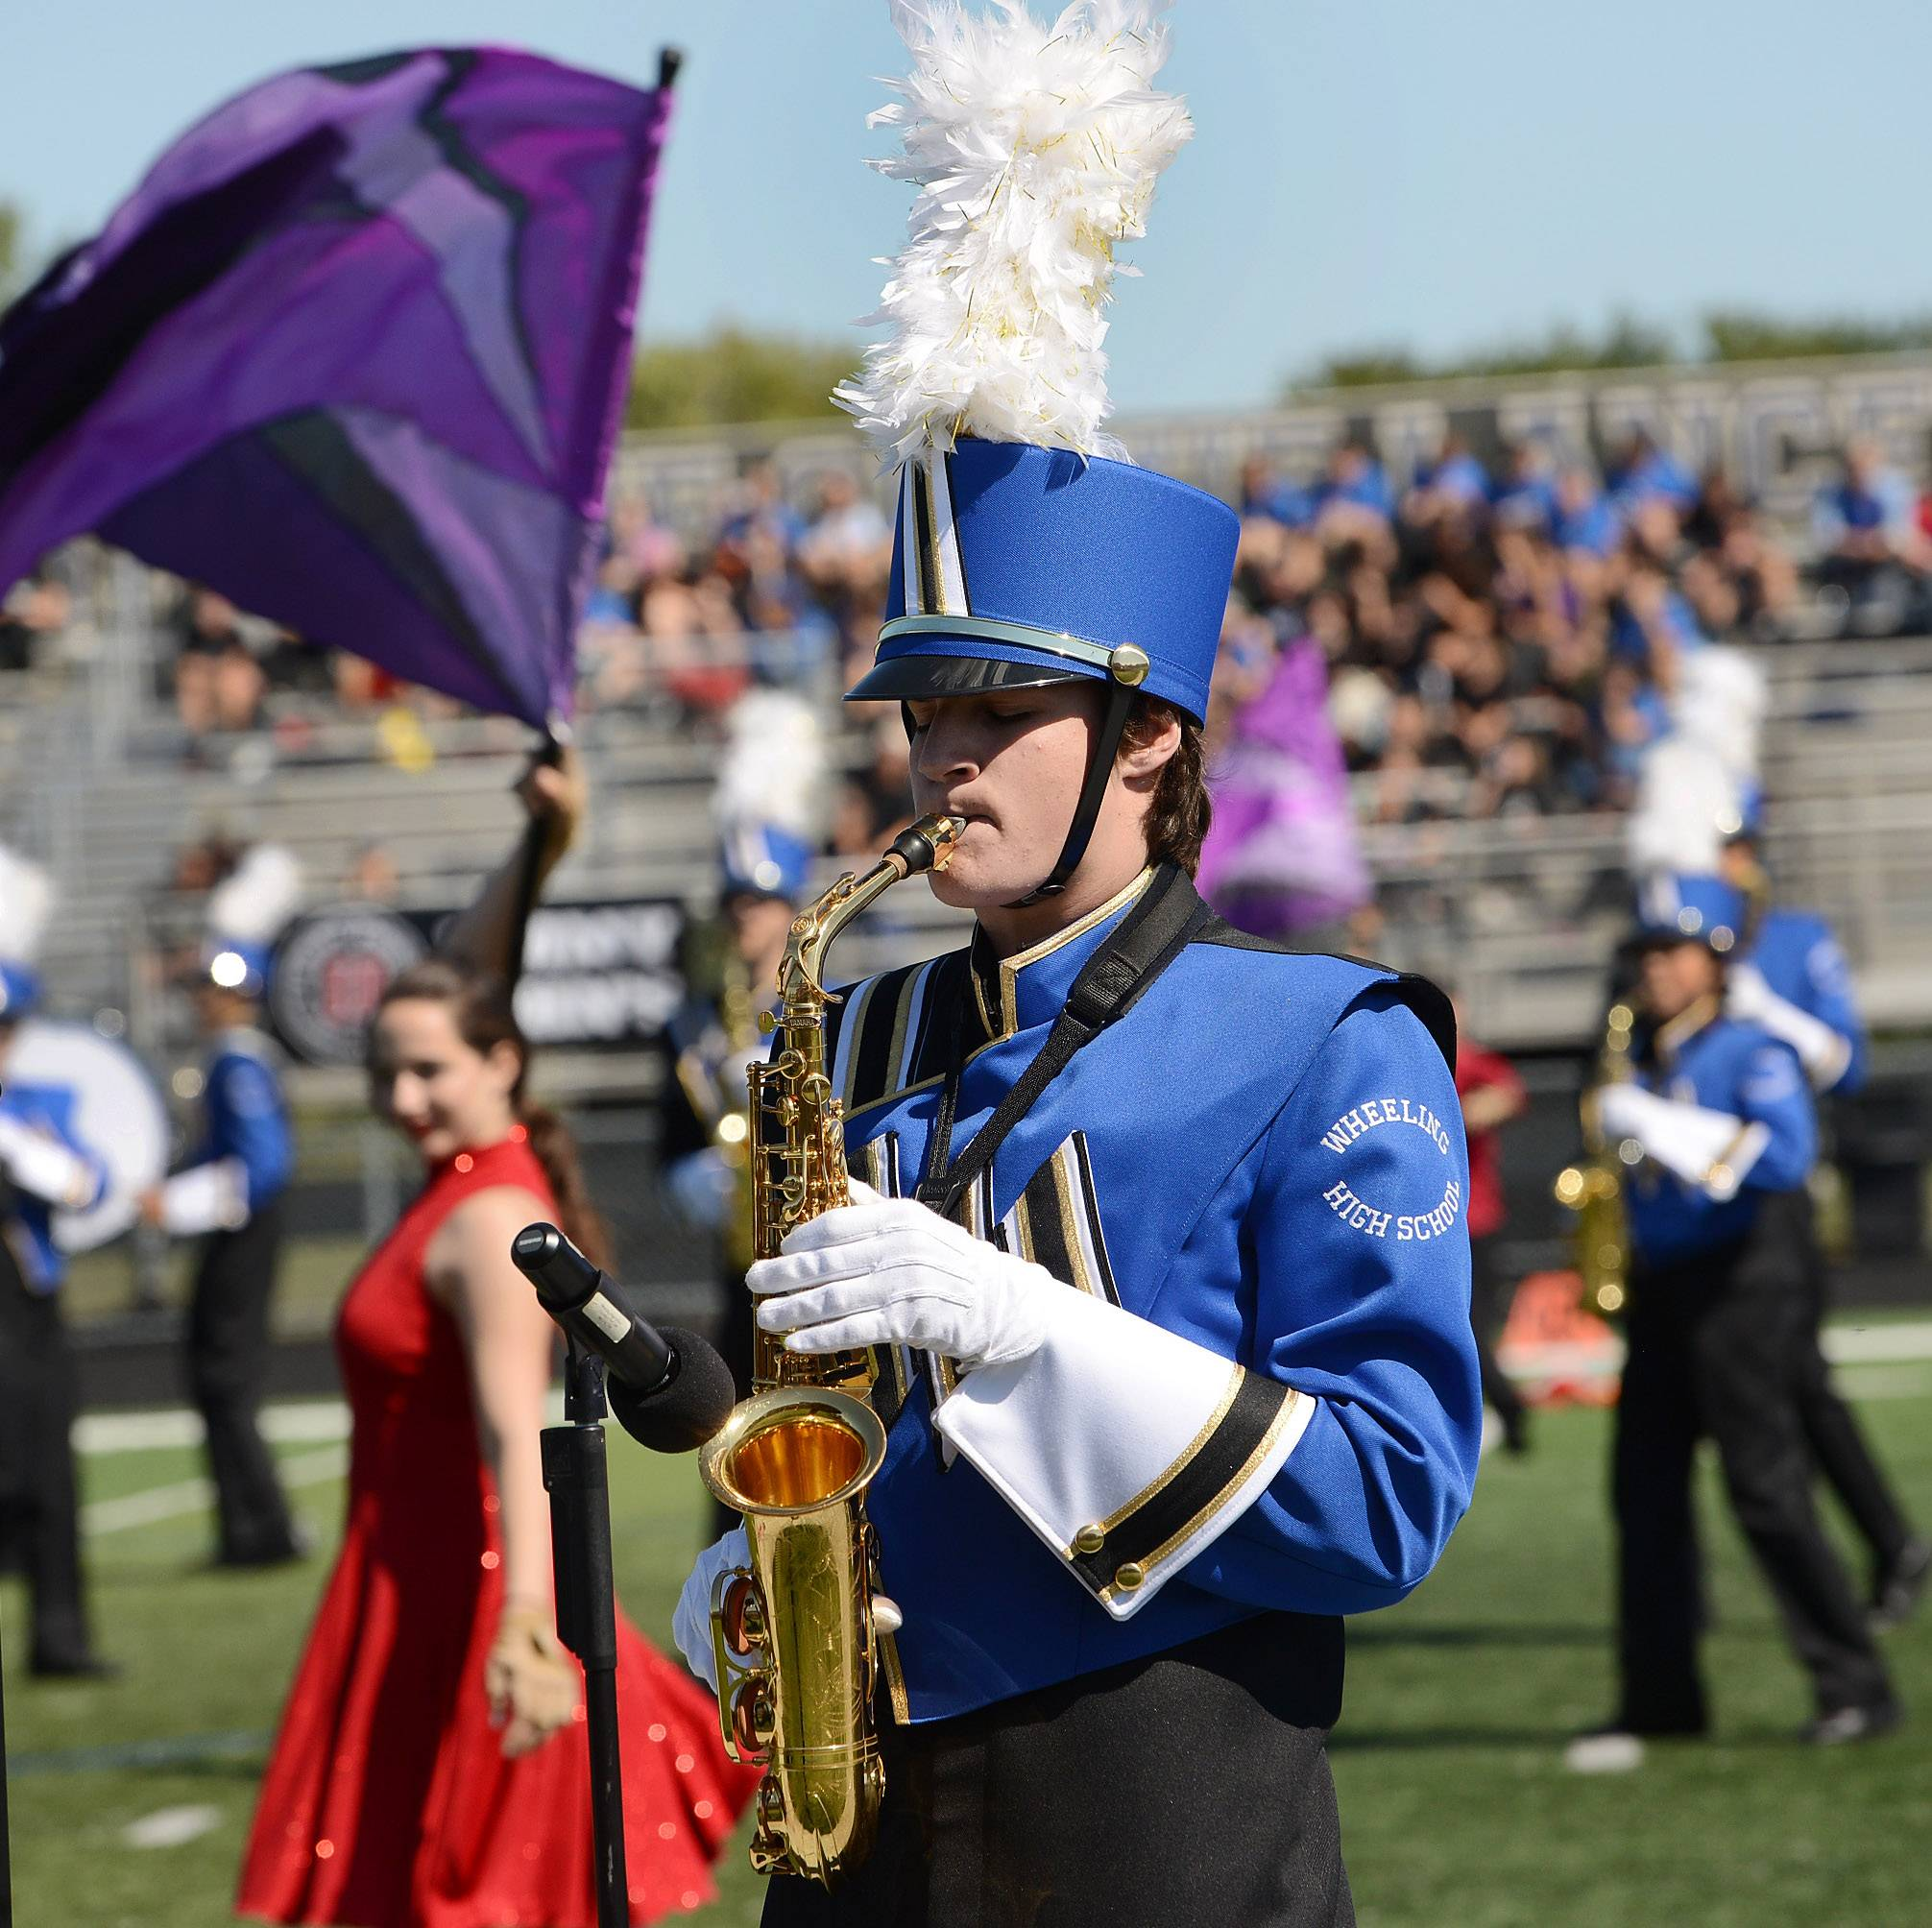 Wheeling Marching Band member Jon Musto plays the saxophone Saturday at the 39th annual Lake Park Lancer Joust.